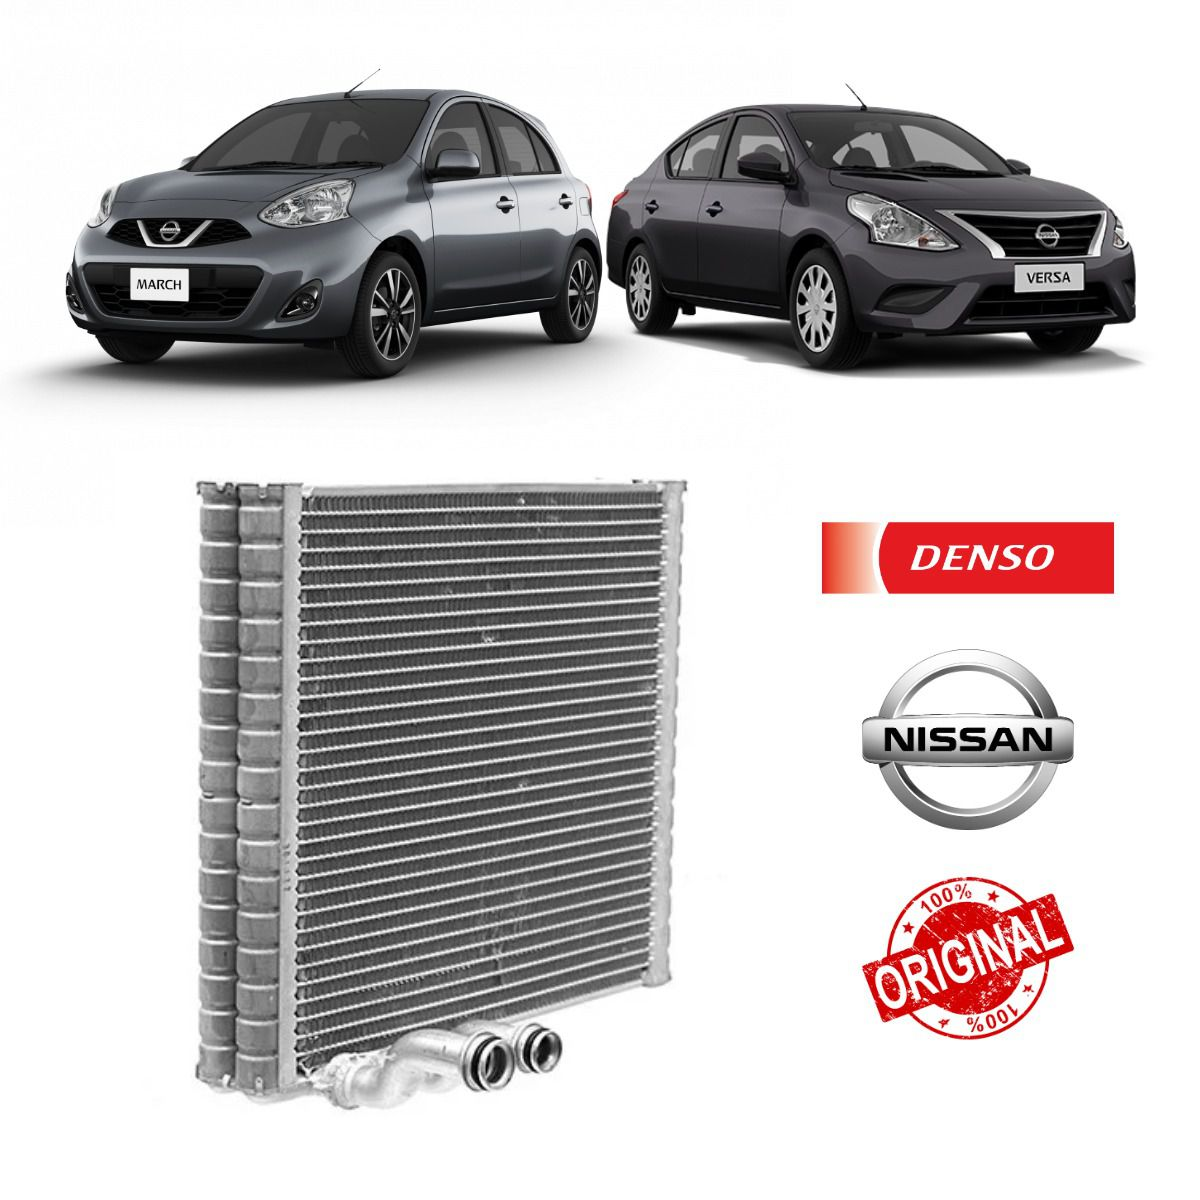 Evaporador Nissan March, Versa BC447610-7951RC - Denso